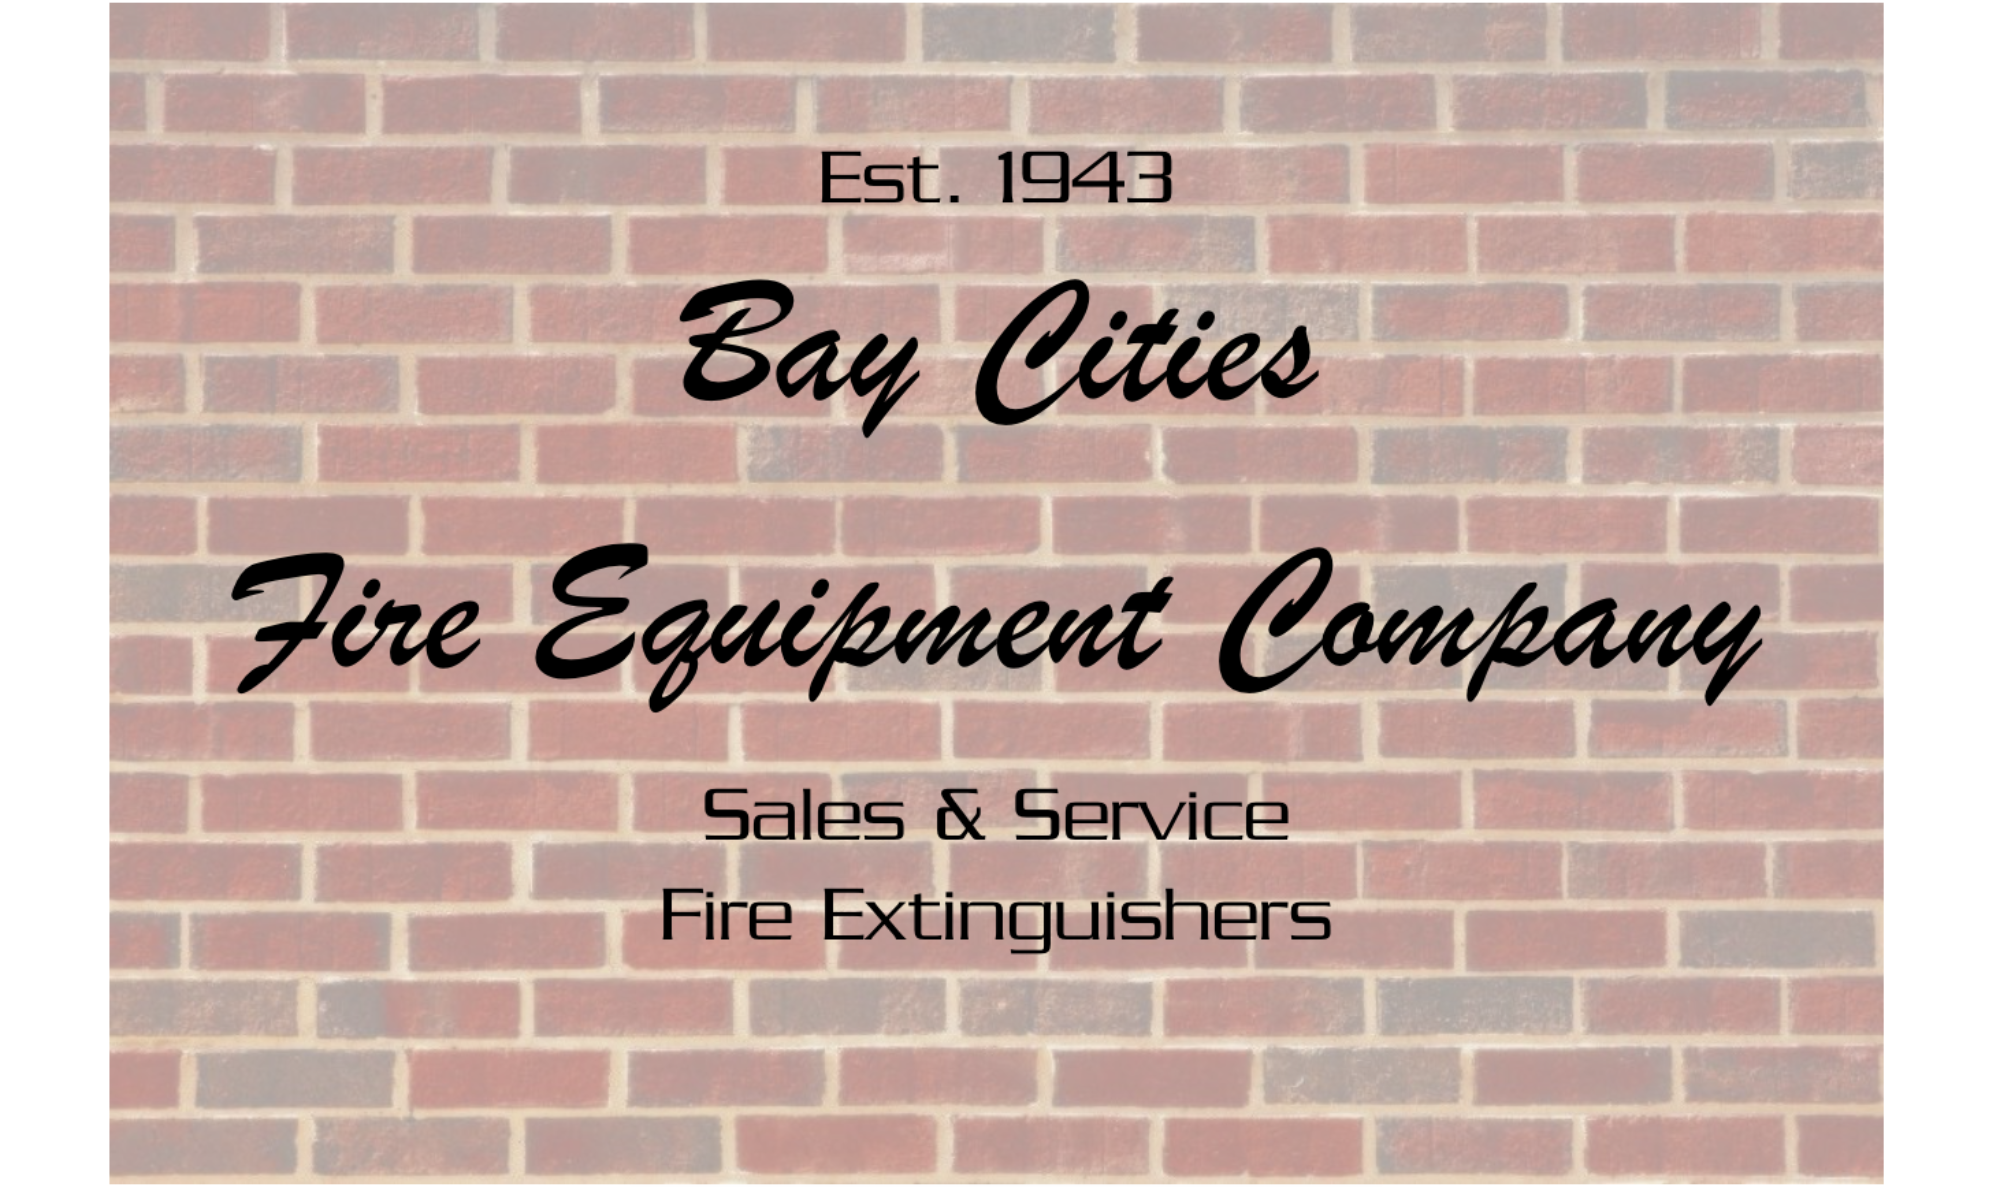 Bay Cities Fire Equipment Co.